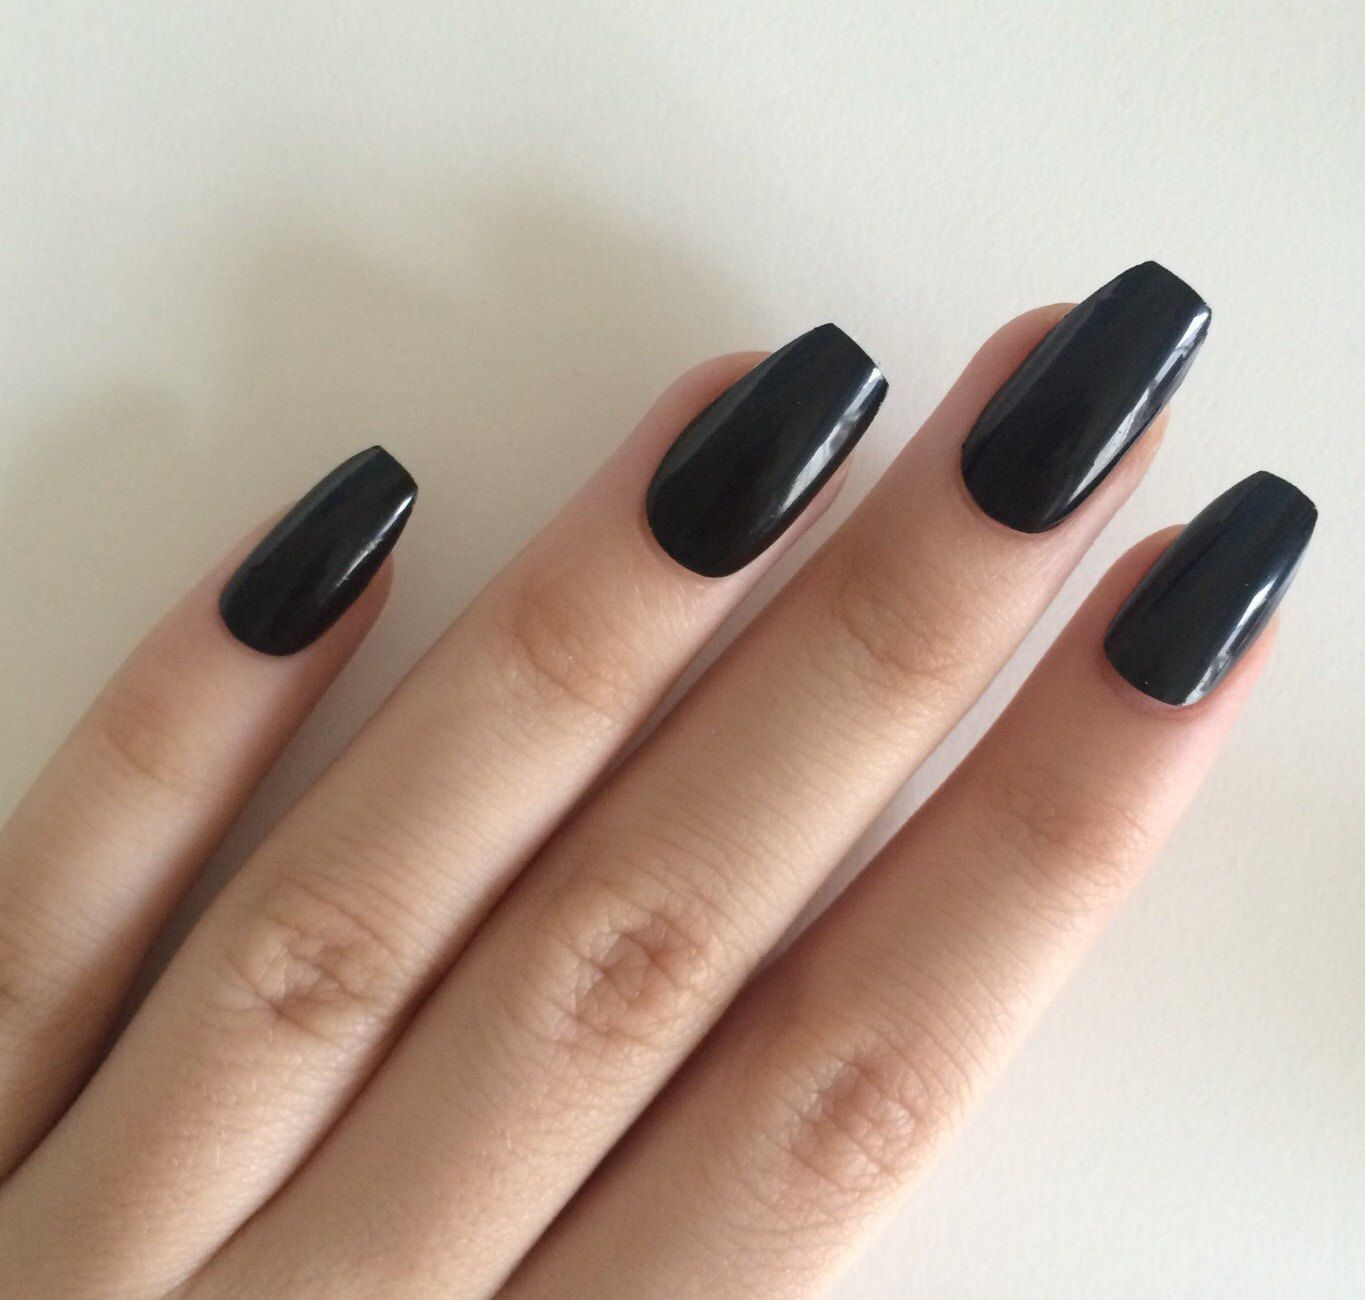 Popular items for coffin shaped nails on Etsy | Hoco | Pinterest ...